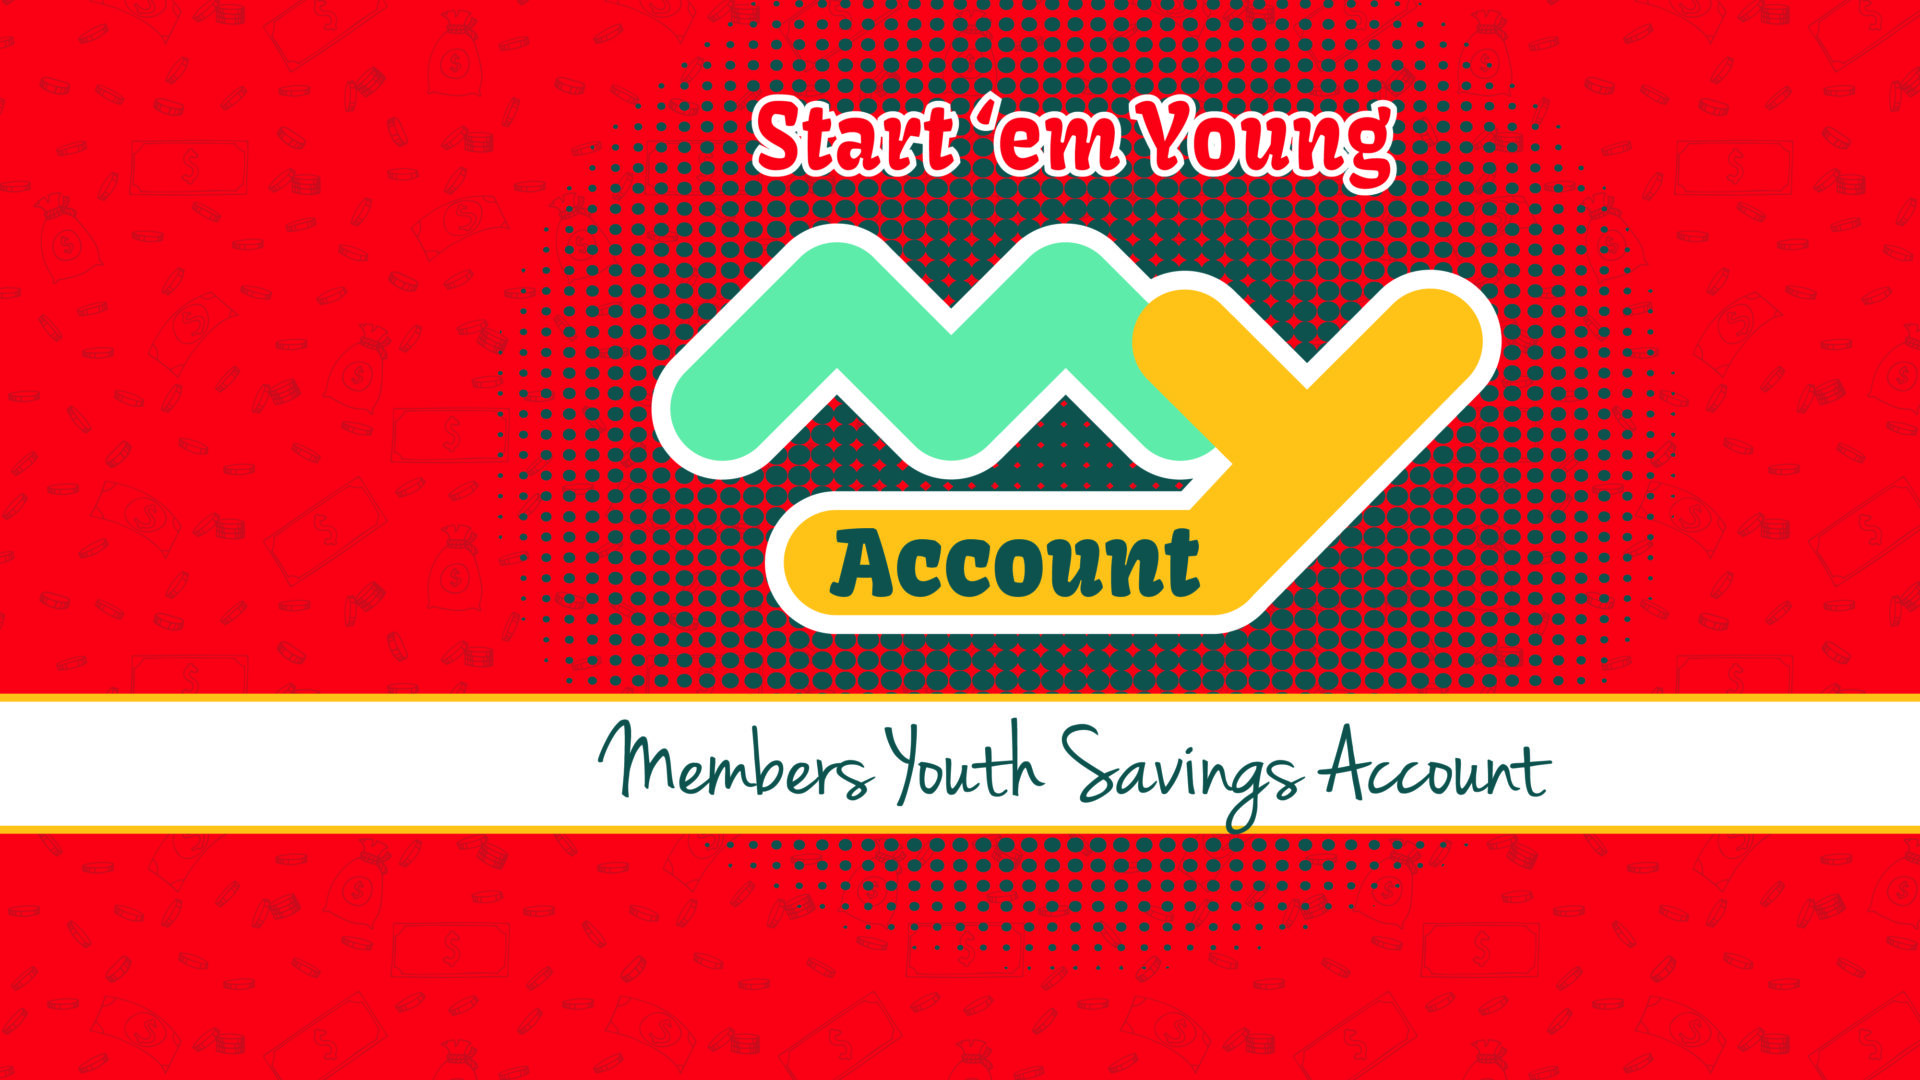 Start 'em Youth with a MY Members Youth Savings Account